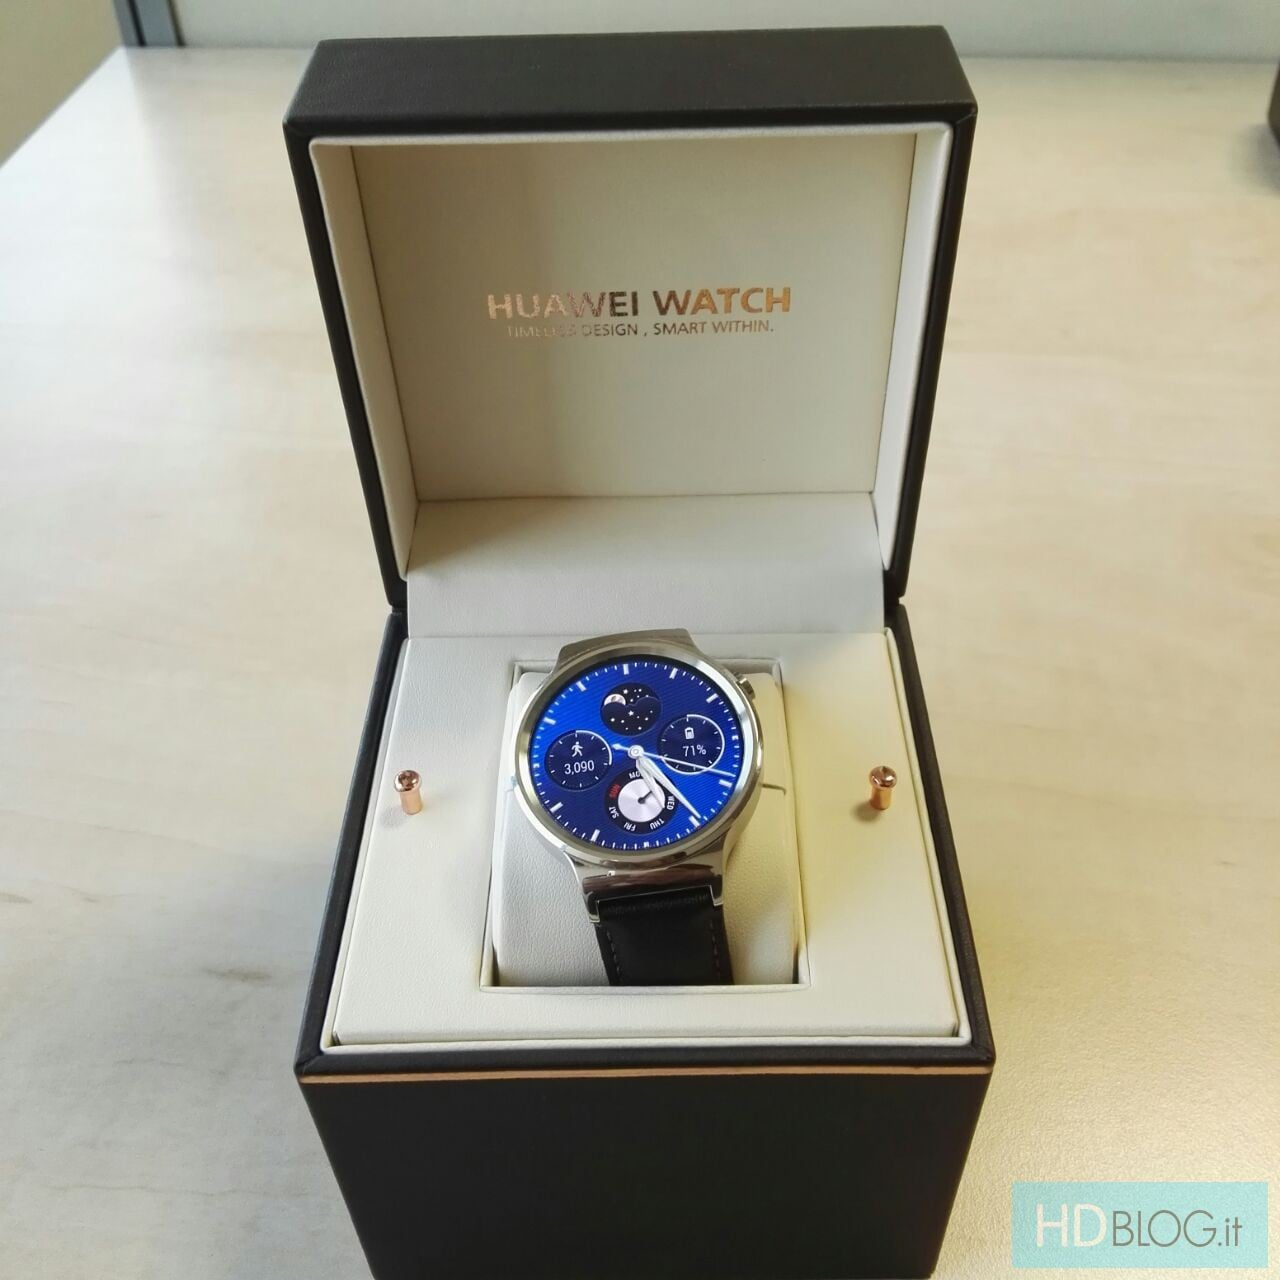 Huawei Watch confezione leaked - 4